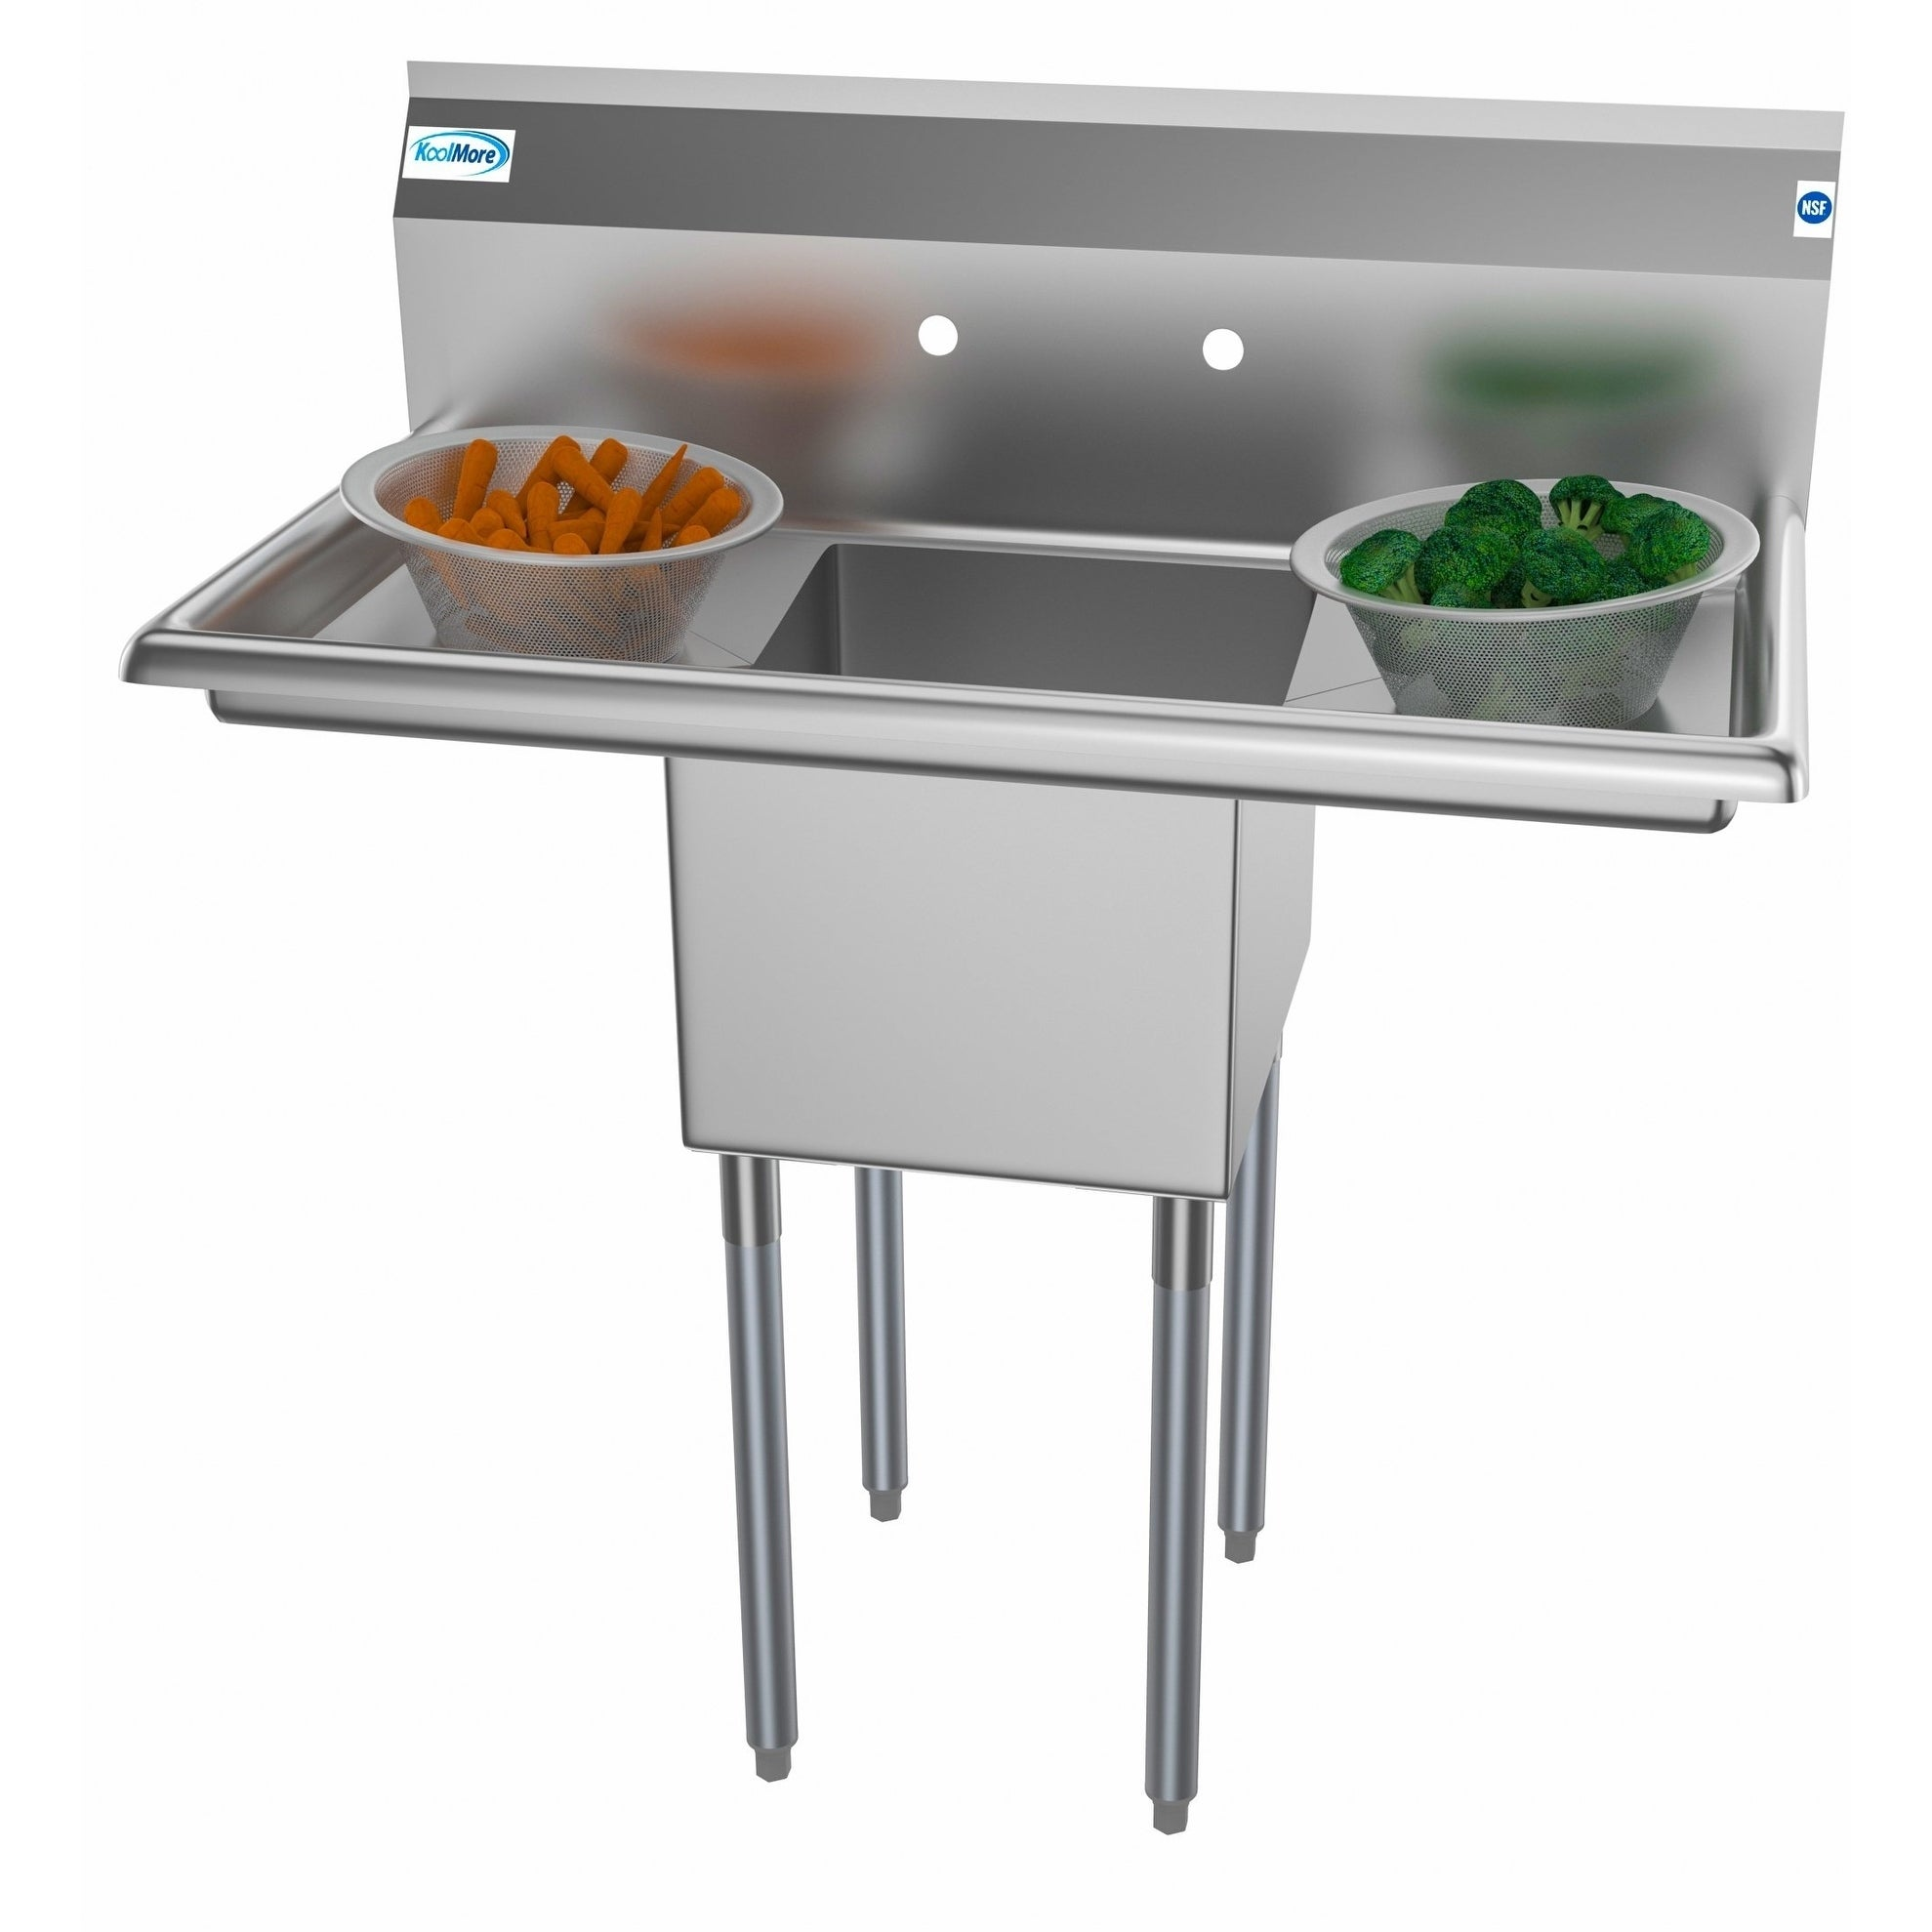 Koolmore 38 Inch Stainless Steel Commercial Kitchen Prep Sink 2 Drainboards Gray Commercial Kitchen Commercial Kitchen Sinks Kitchen Prep Sink